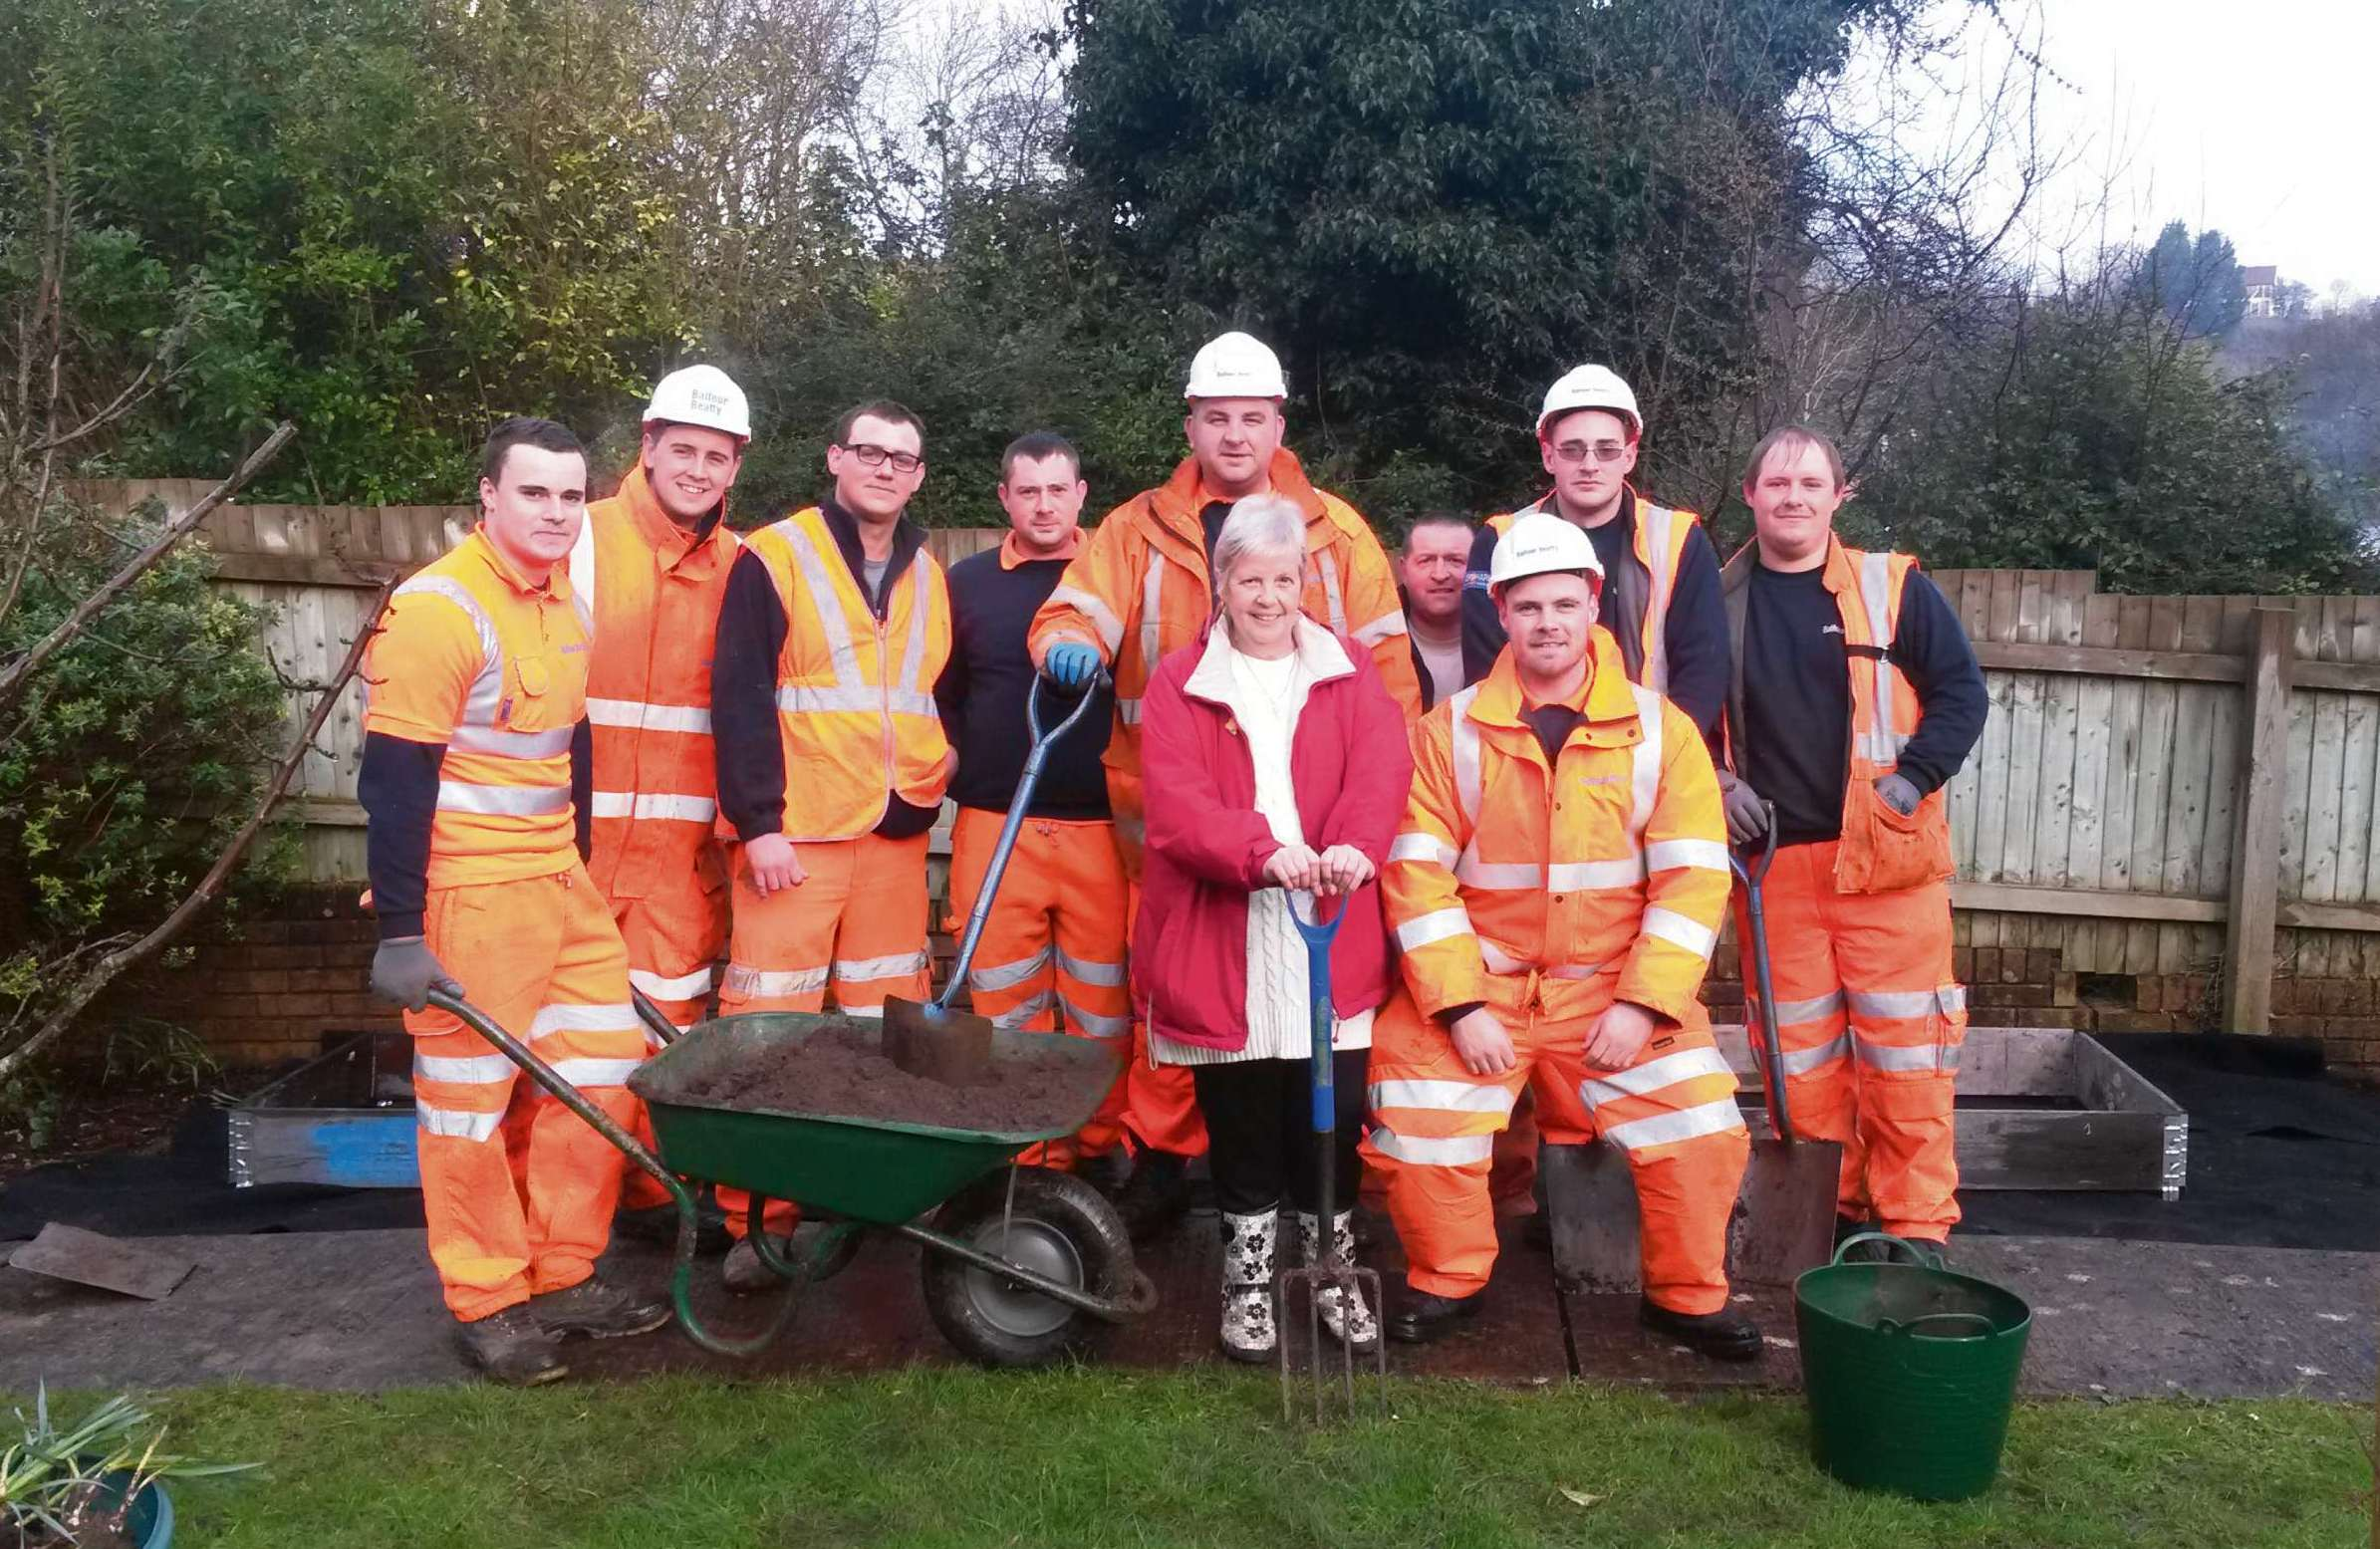 Gwyn James Court garden gets redeveloped thanks to volunteers